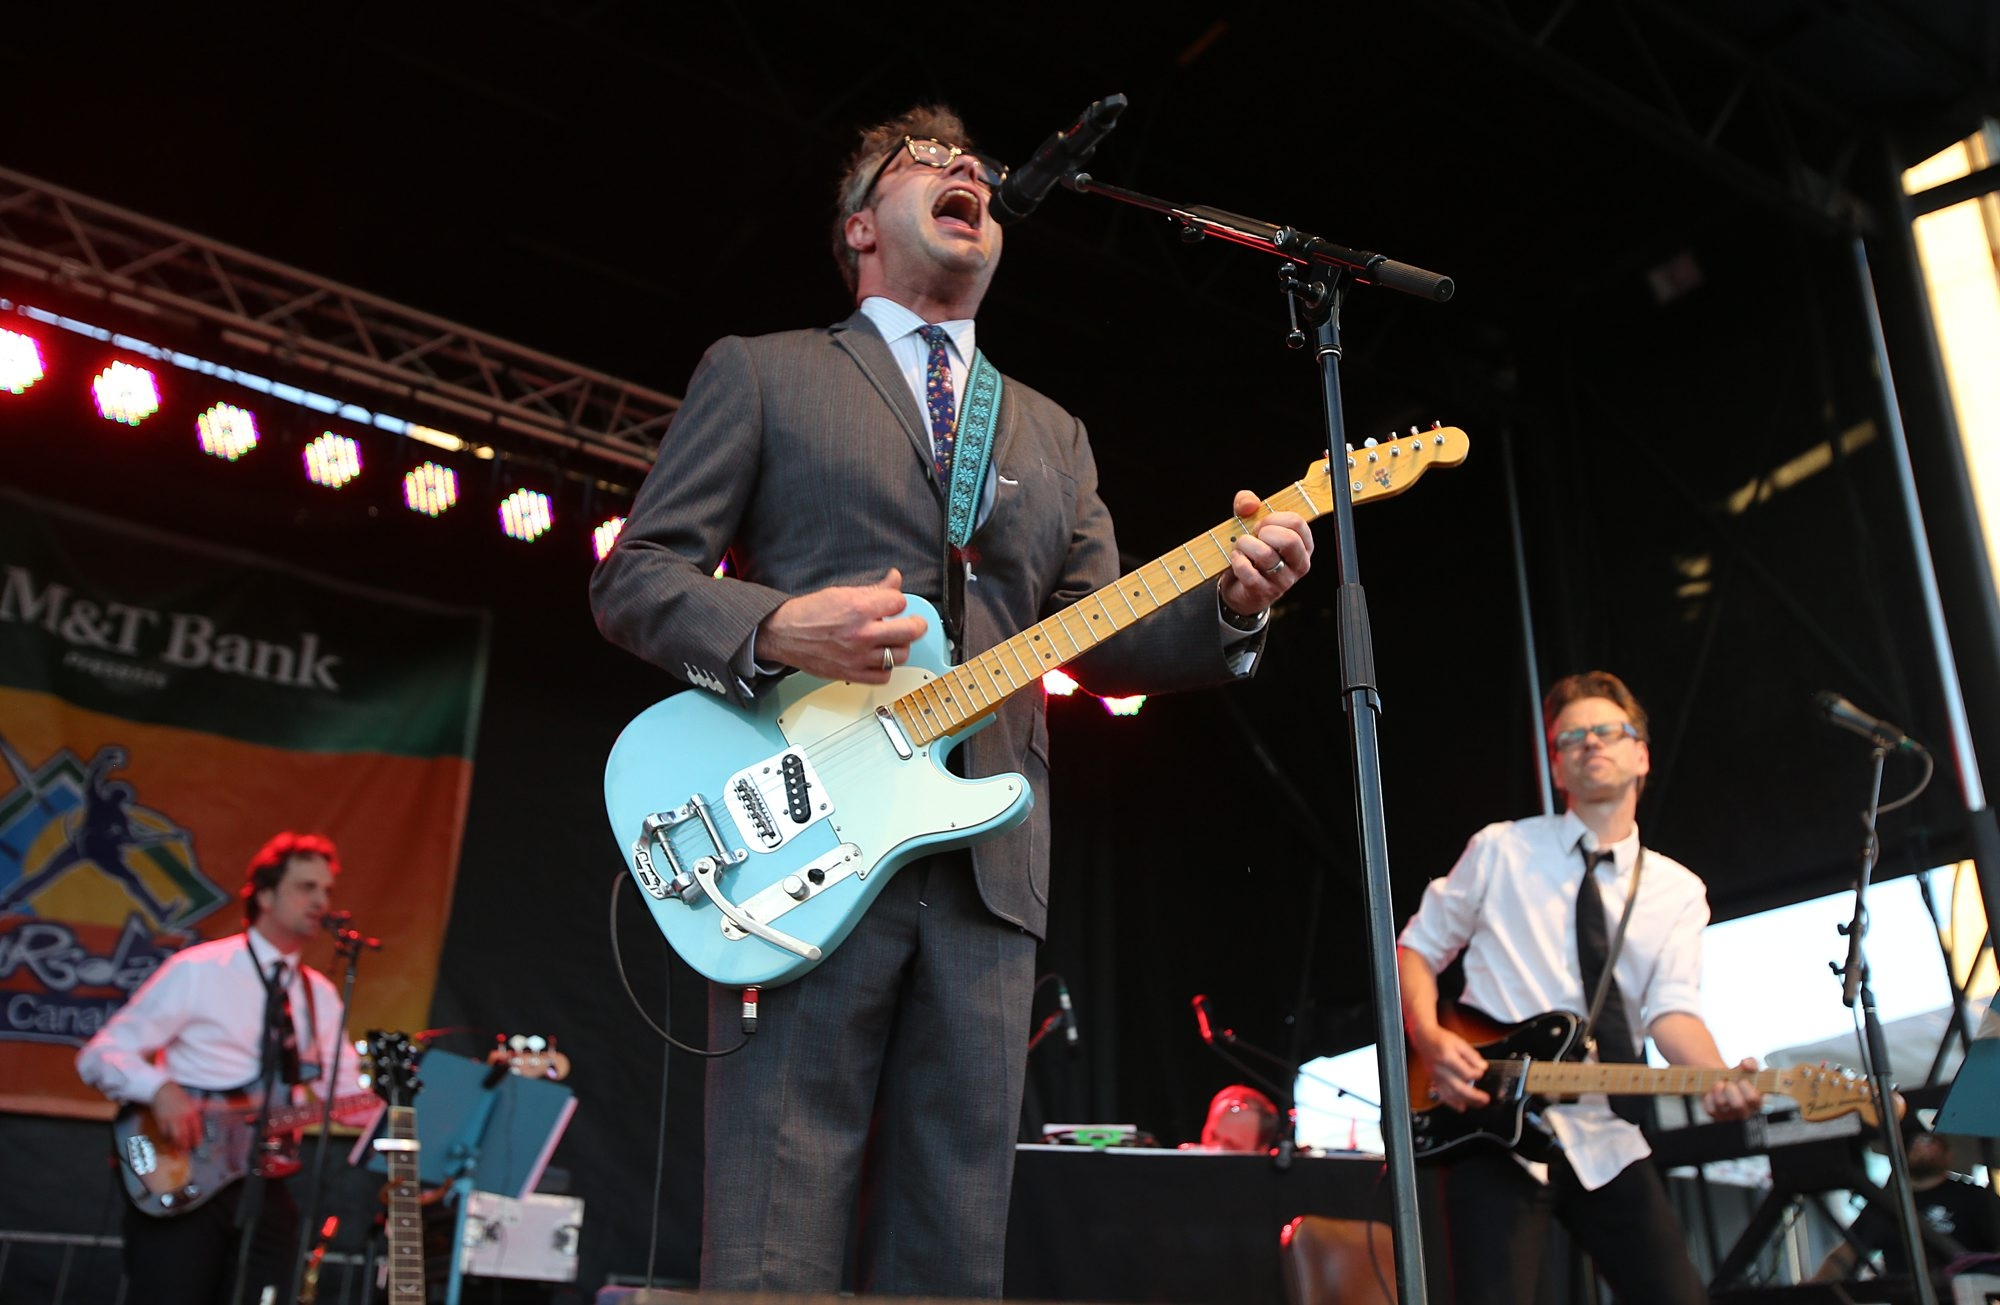 Steven Page, sporting a suit and tie, brought his versatile band to back his mix of solo hits, eccentric covers and old BNL classics.